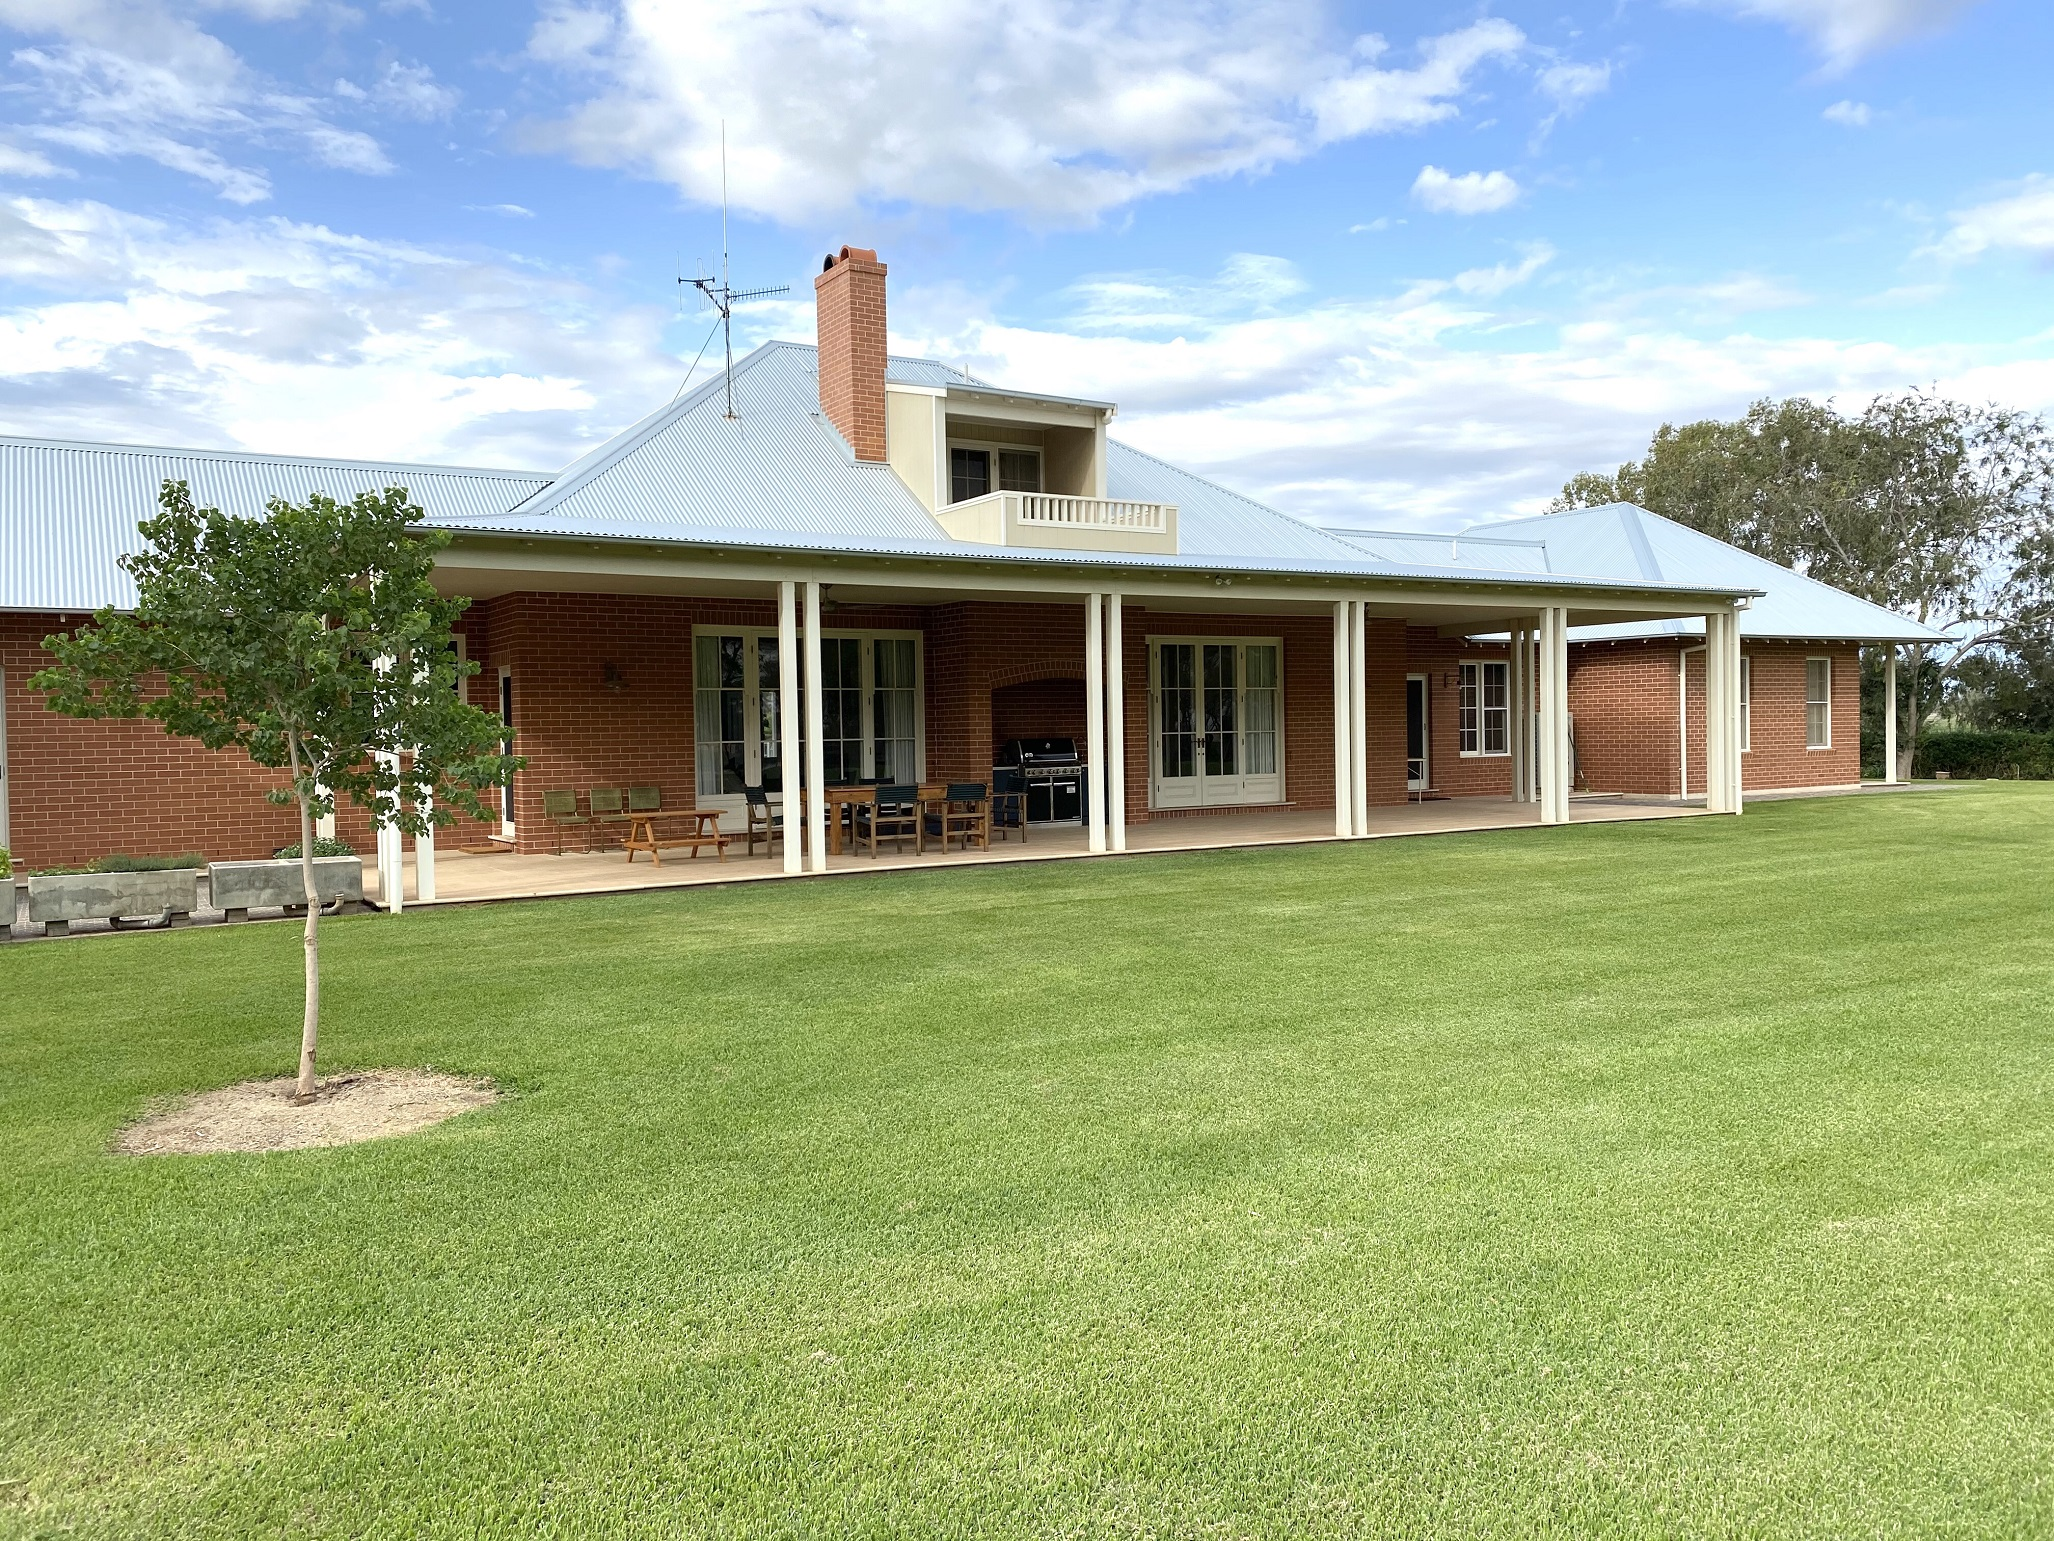 Country Architecture Farmhouse Verandah